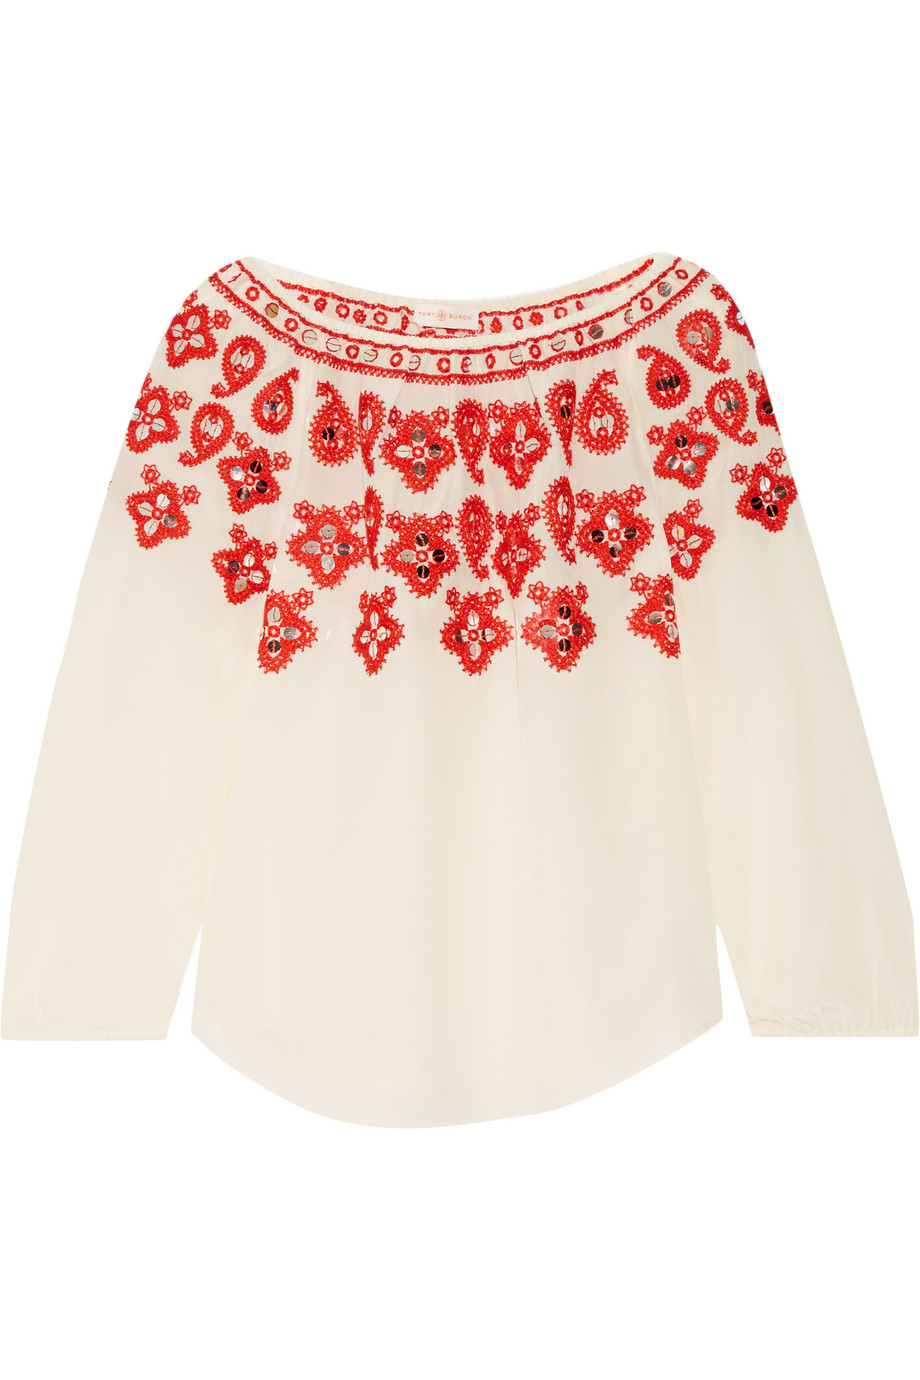 Tory Burch Leyla Sequin-Embellished Embroidered Silk Top, Ecru/Red, Women's, Size: 10